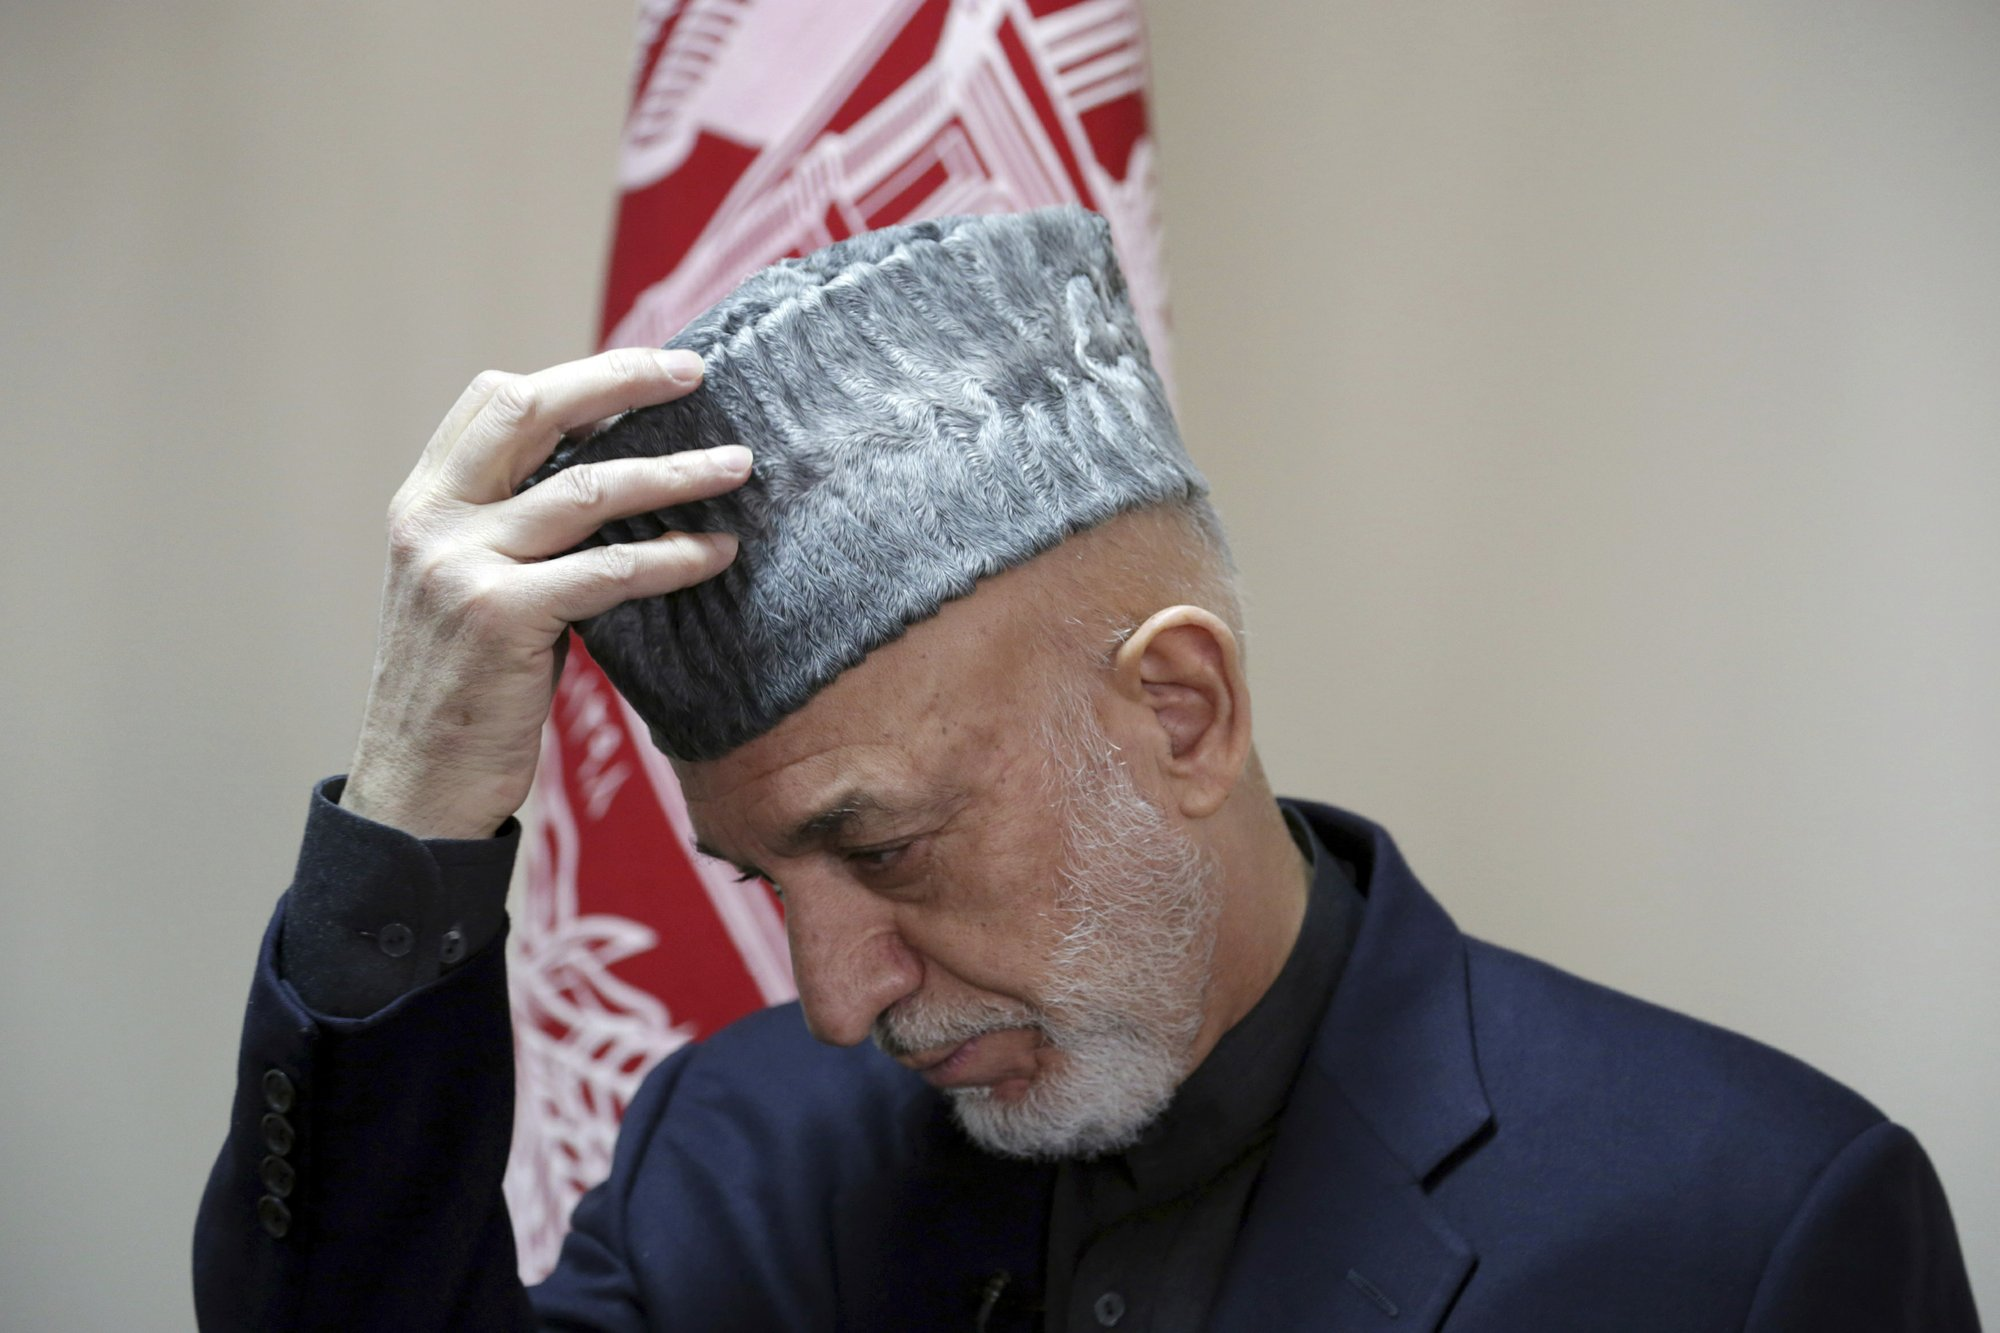 AP Interview: Karzai worries Pakistan talks risk peace pact